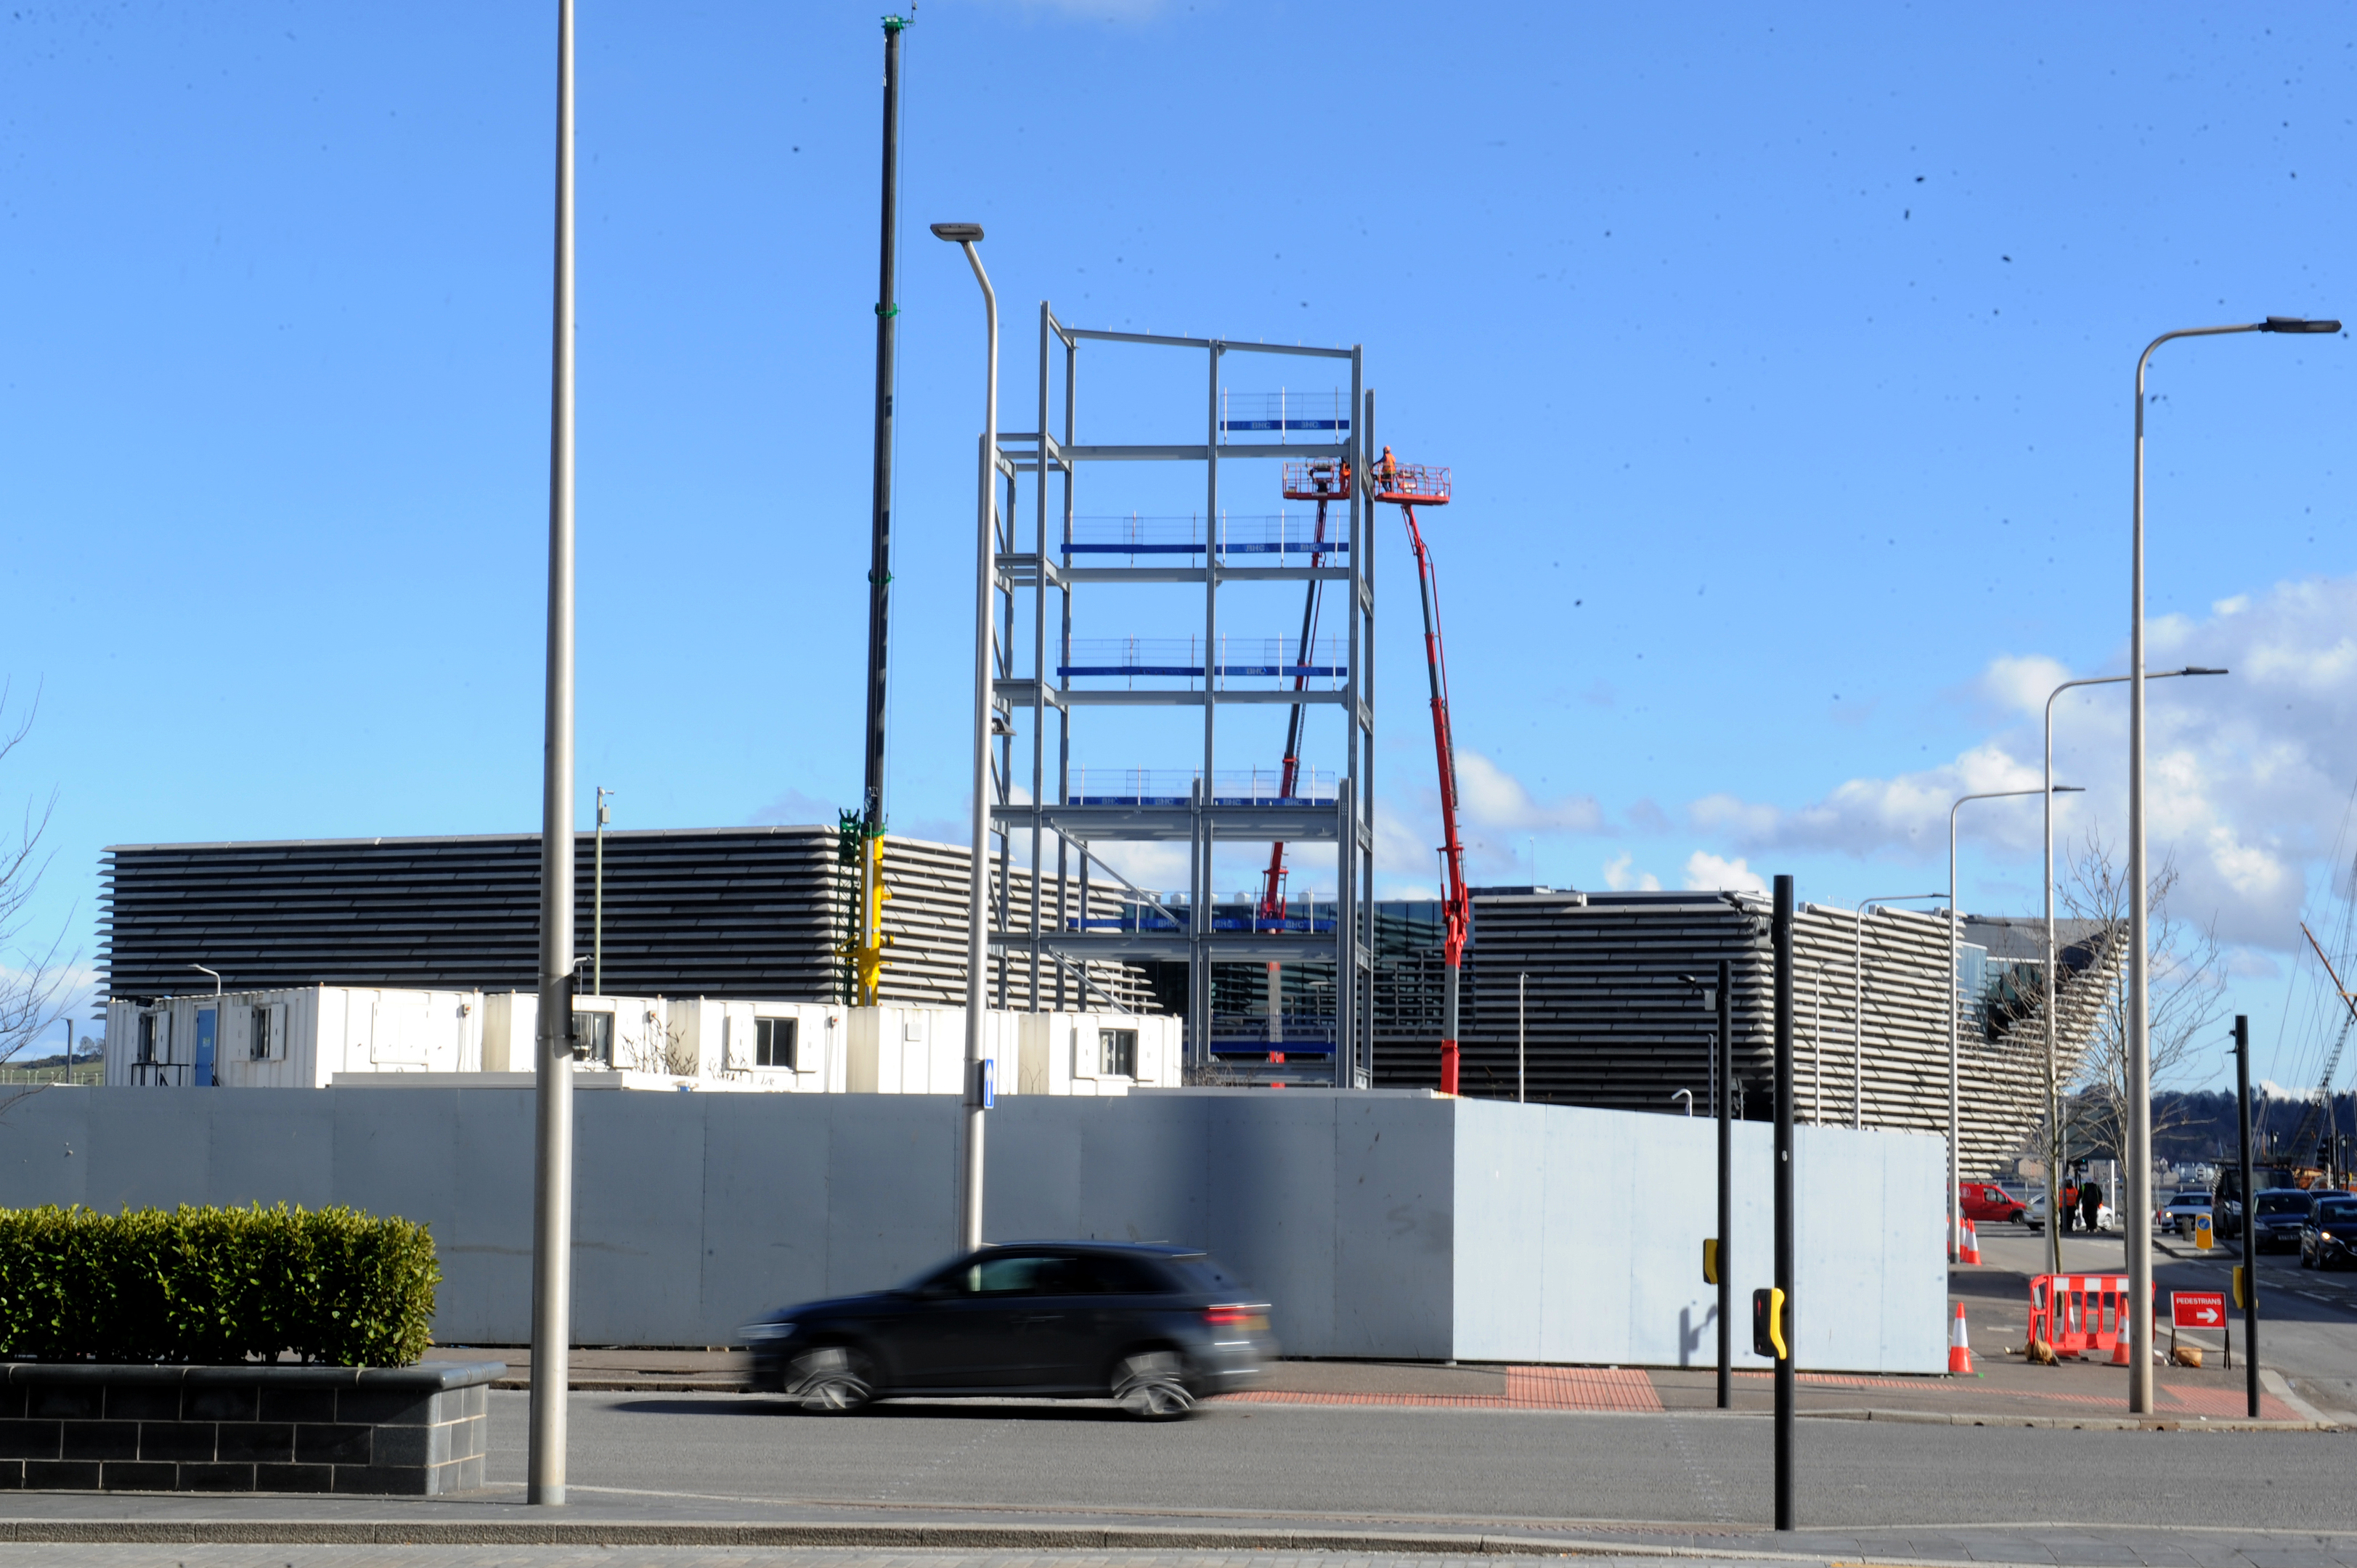 The new office block being built directly across from the V&A.